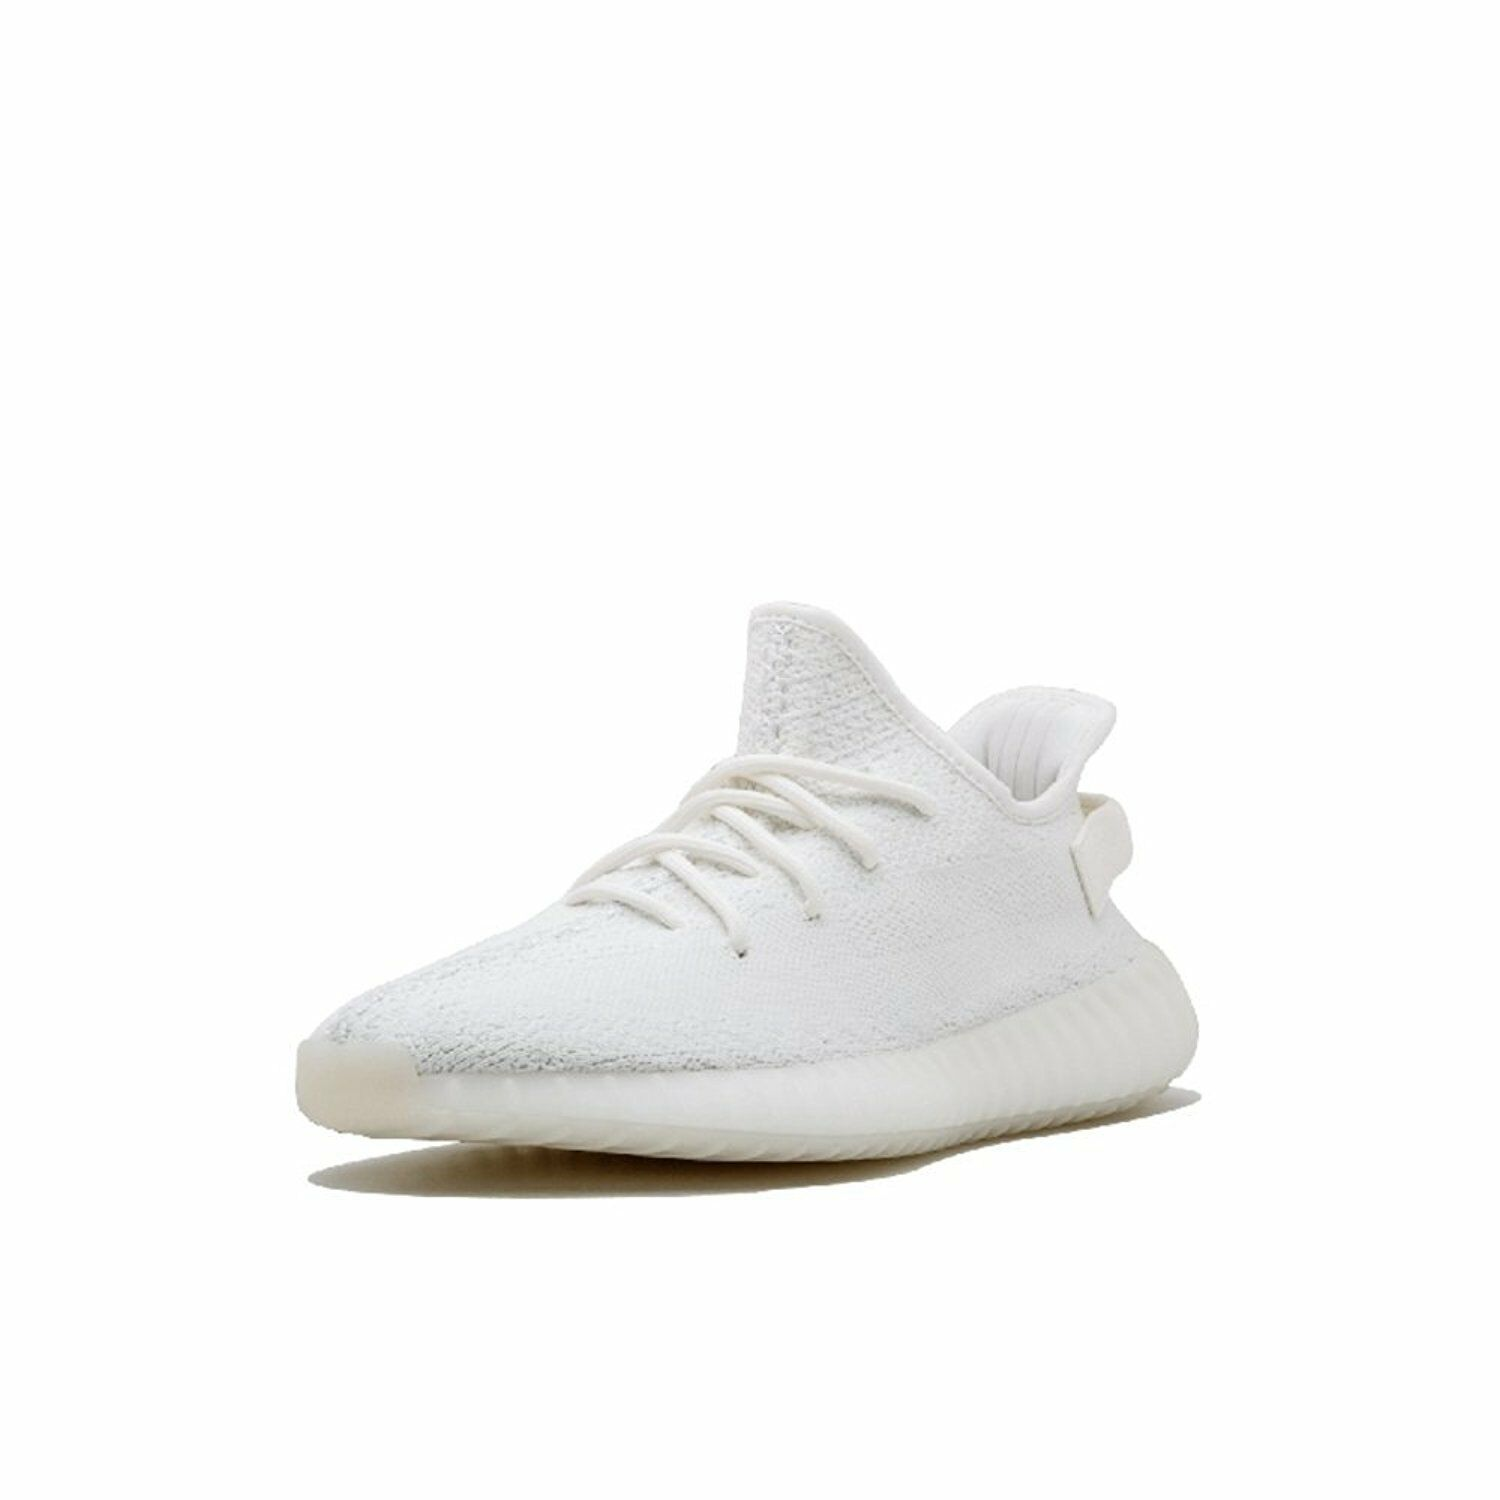 Herren ADIDAS YEEZY BOOST TRAINERS V2 350 V2 TRAINERS CP9366 VARIO  SIZES IN STOCK Weiß 7d3194